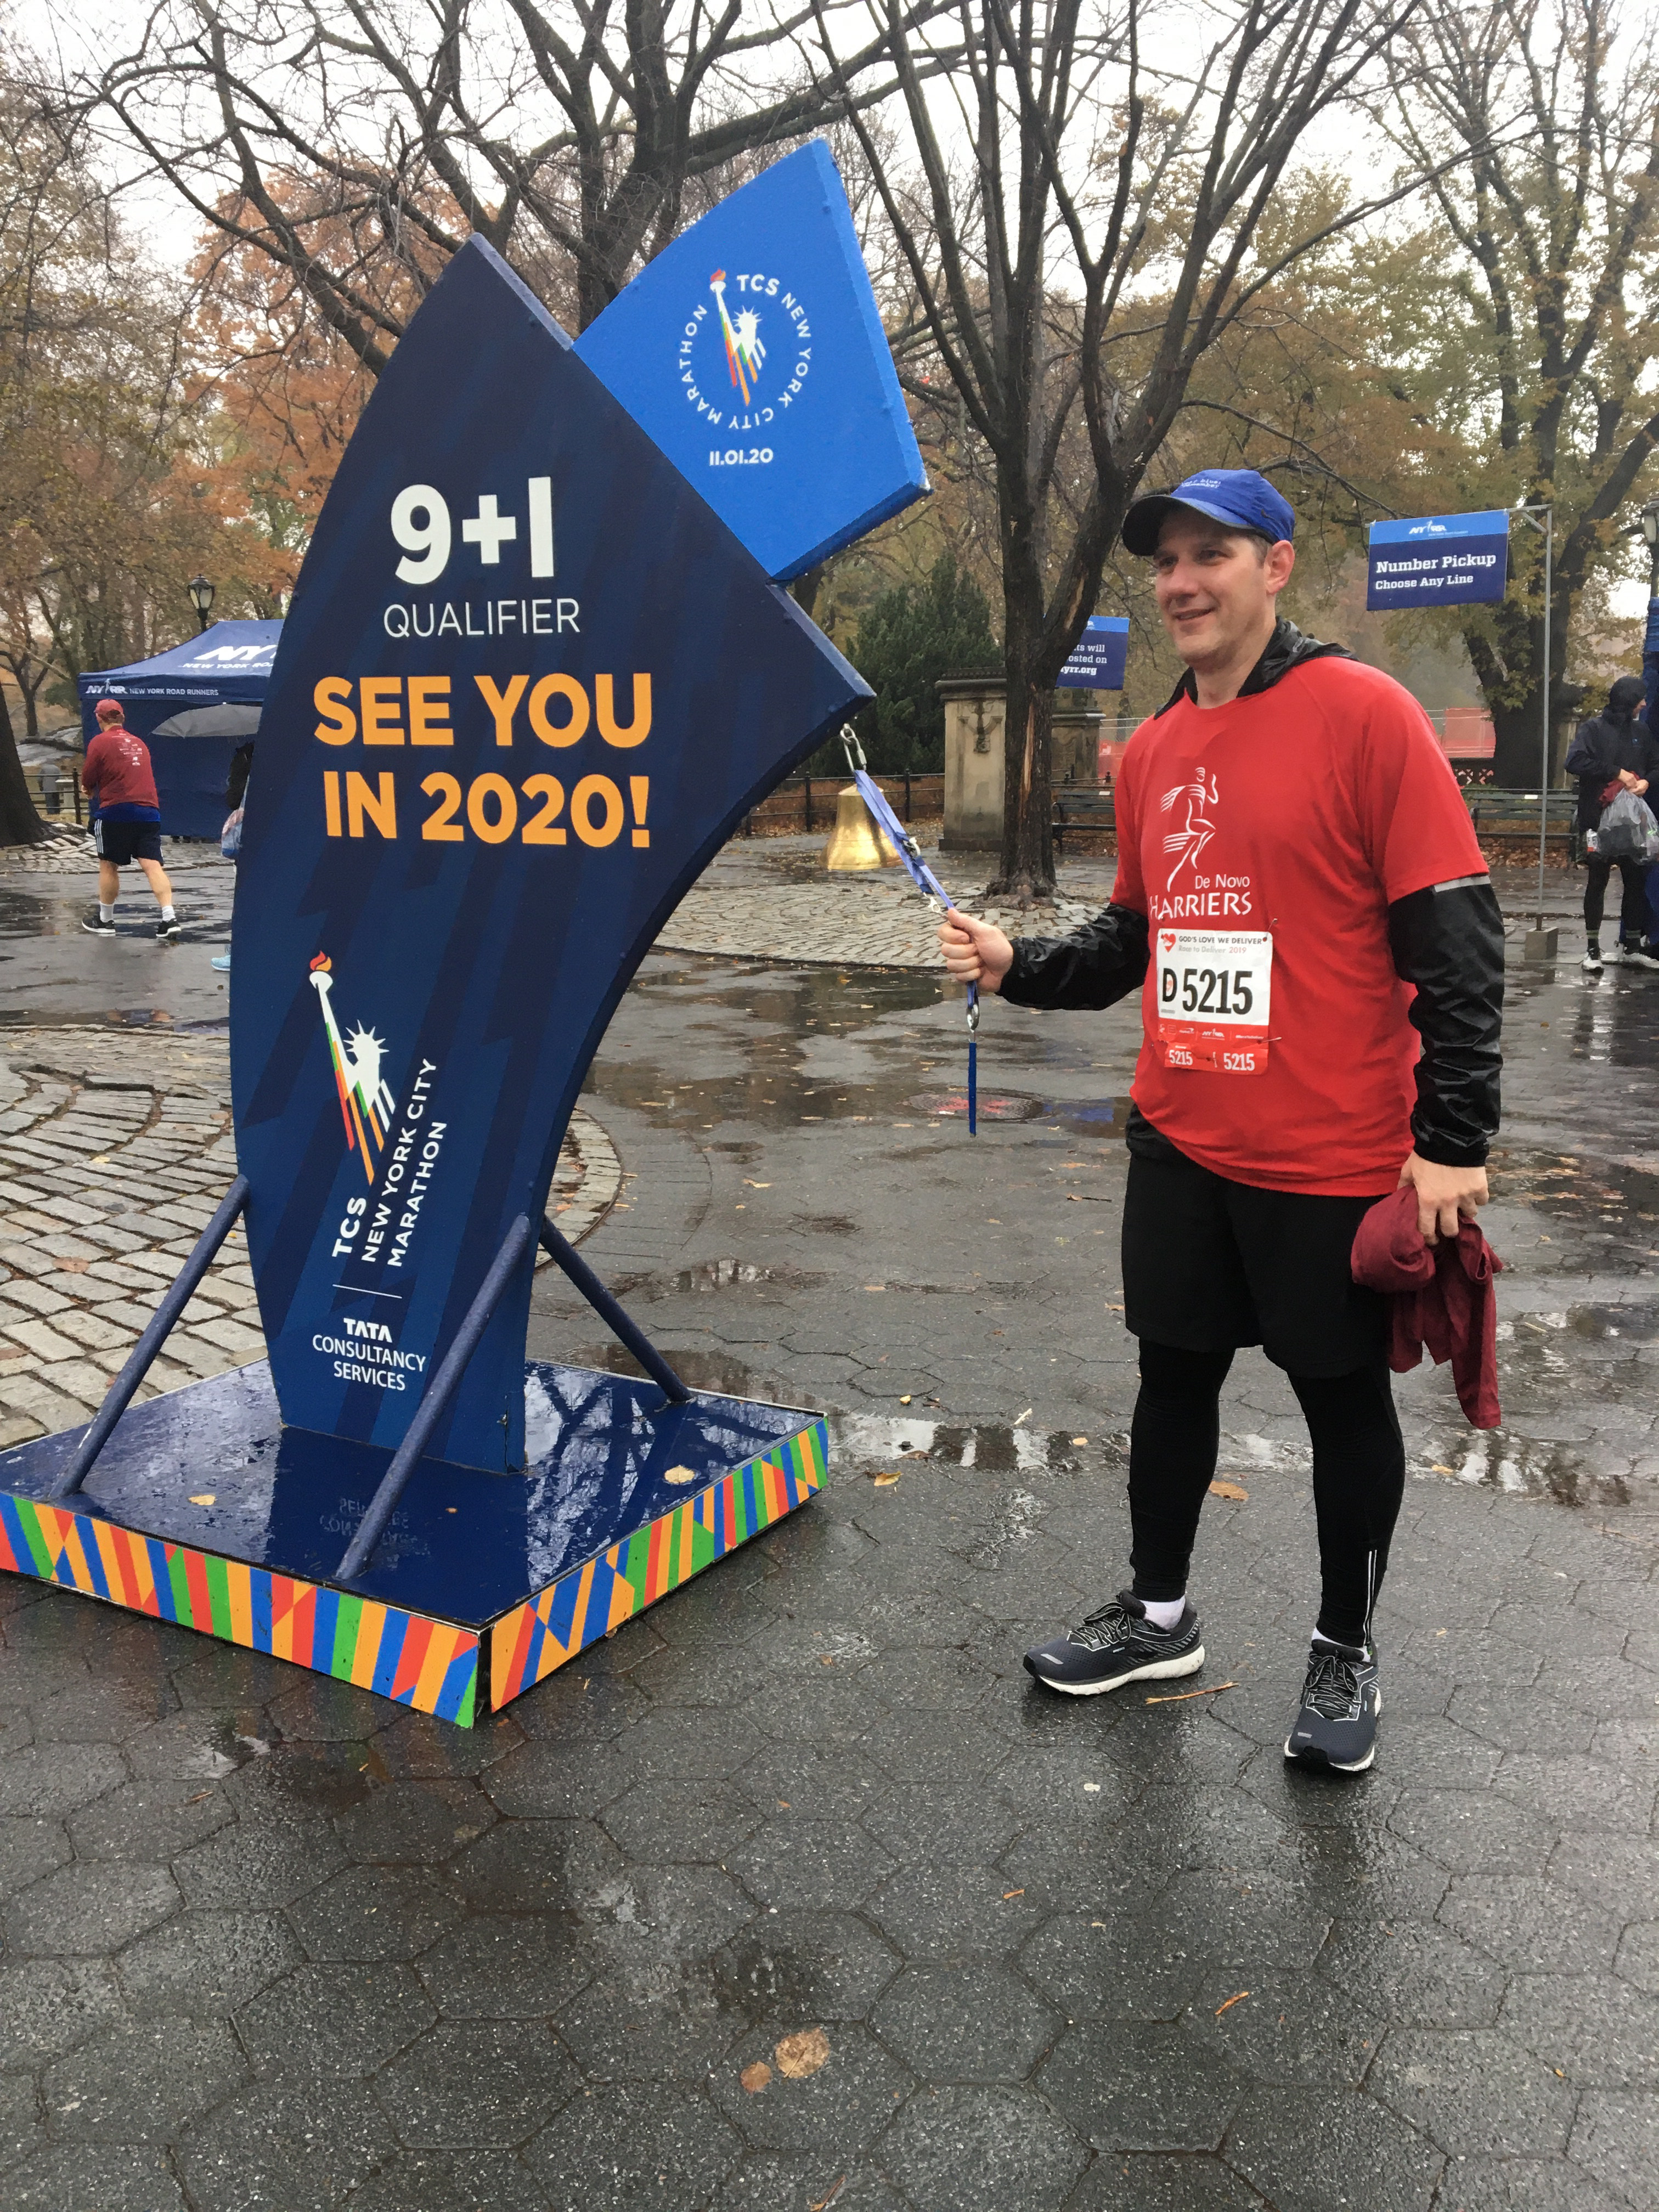 Runner ringing 9+1 bell at 2019 Race to Deliver